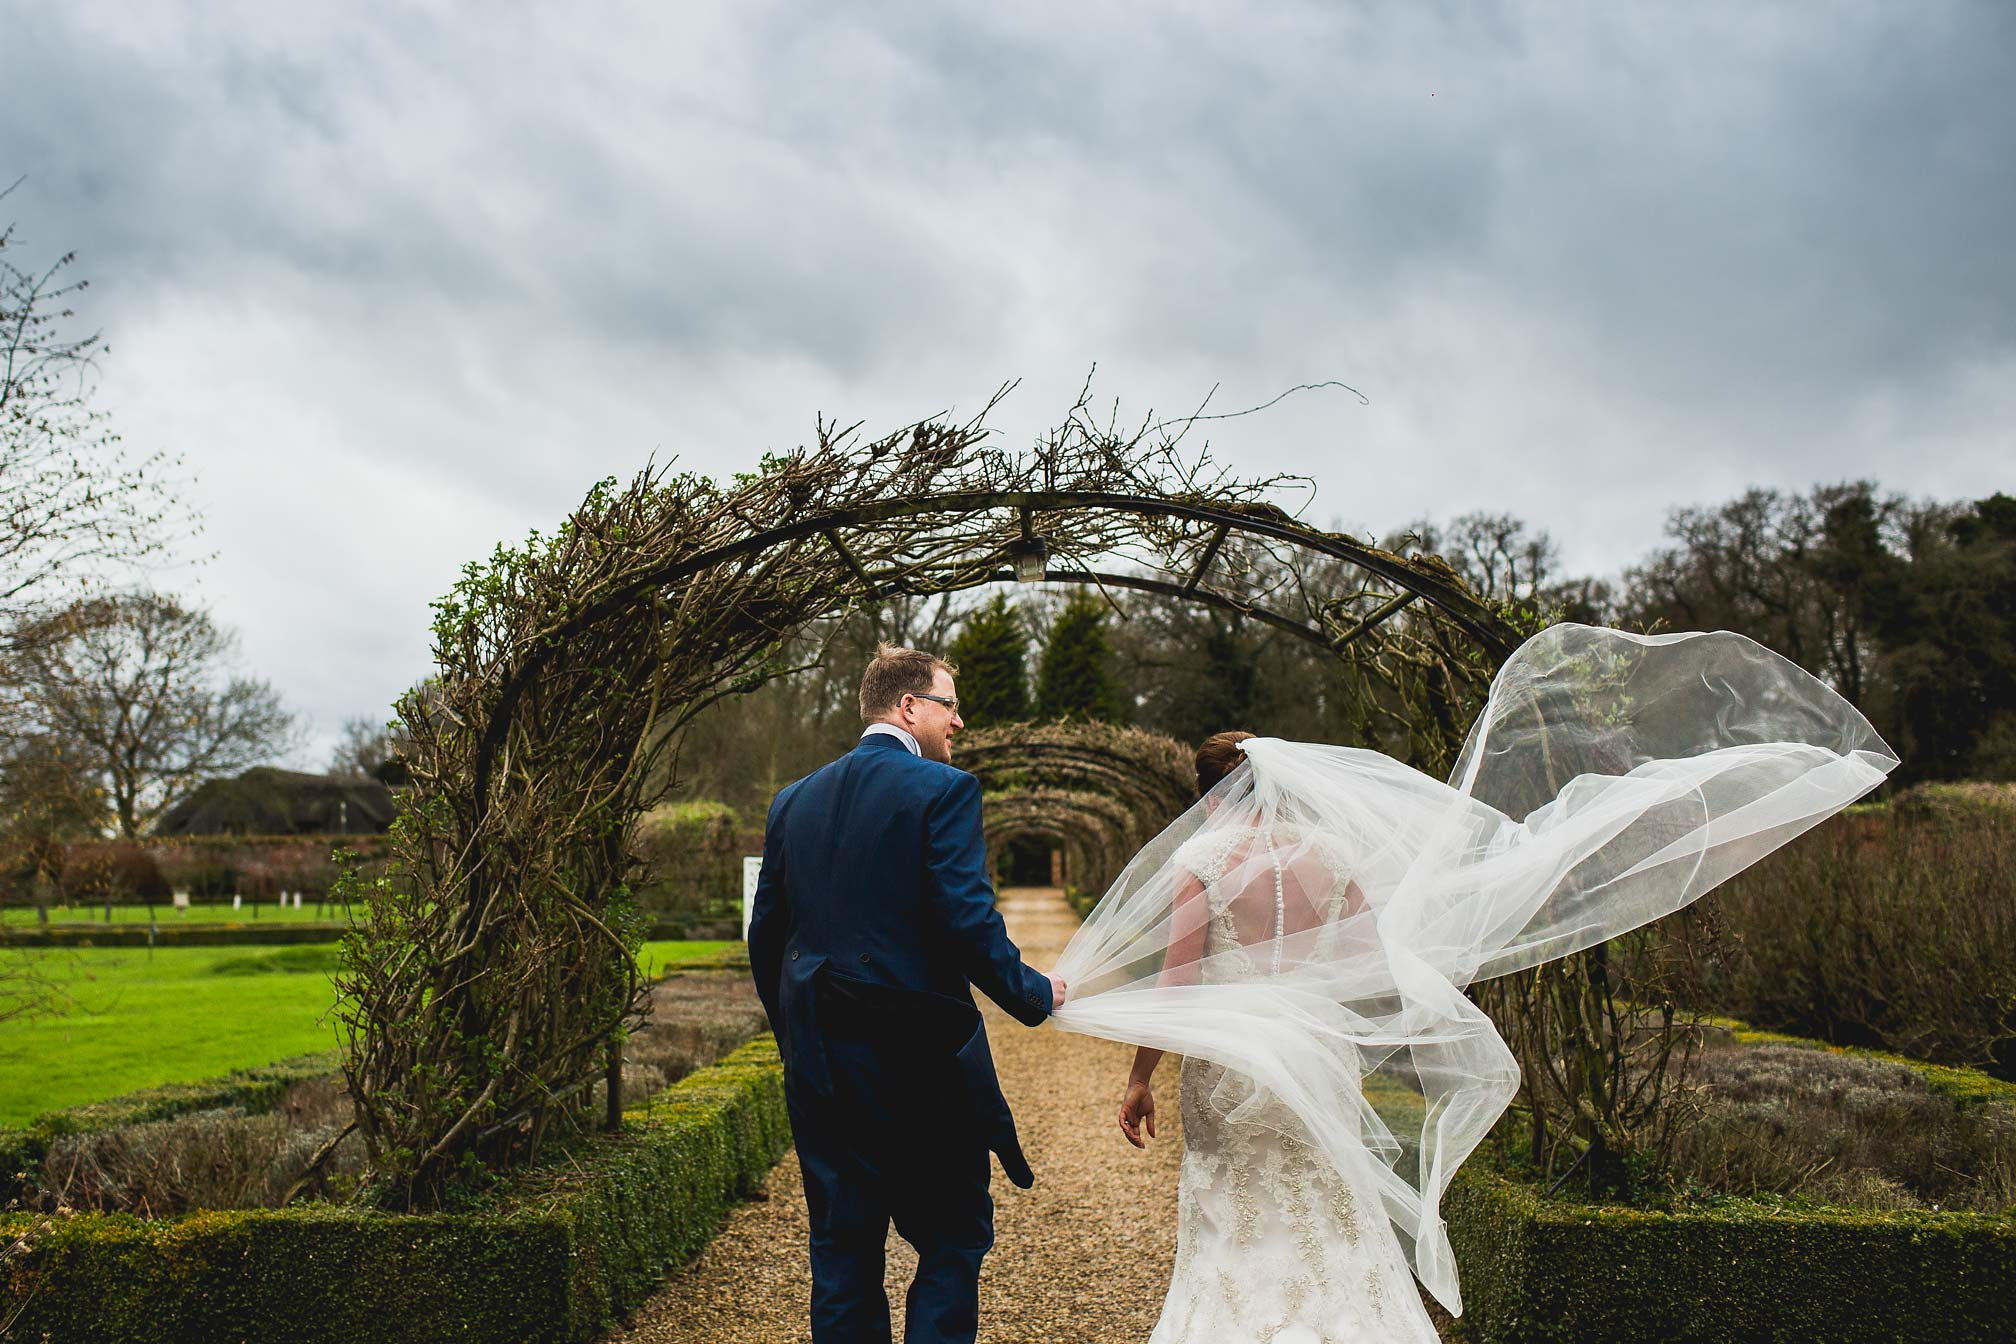 MyWed Editors Choice - Windy Wedding